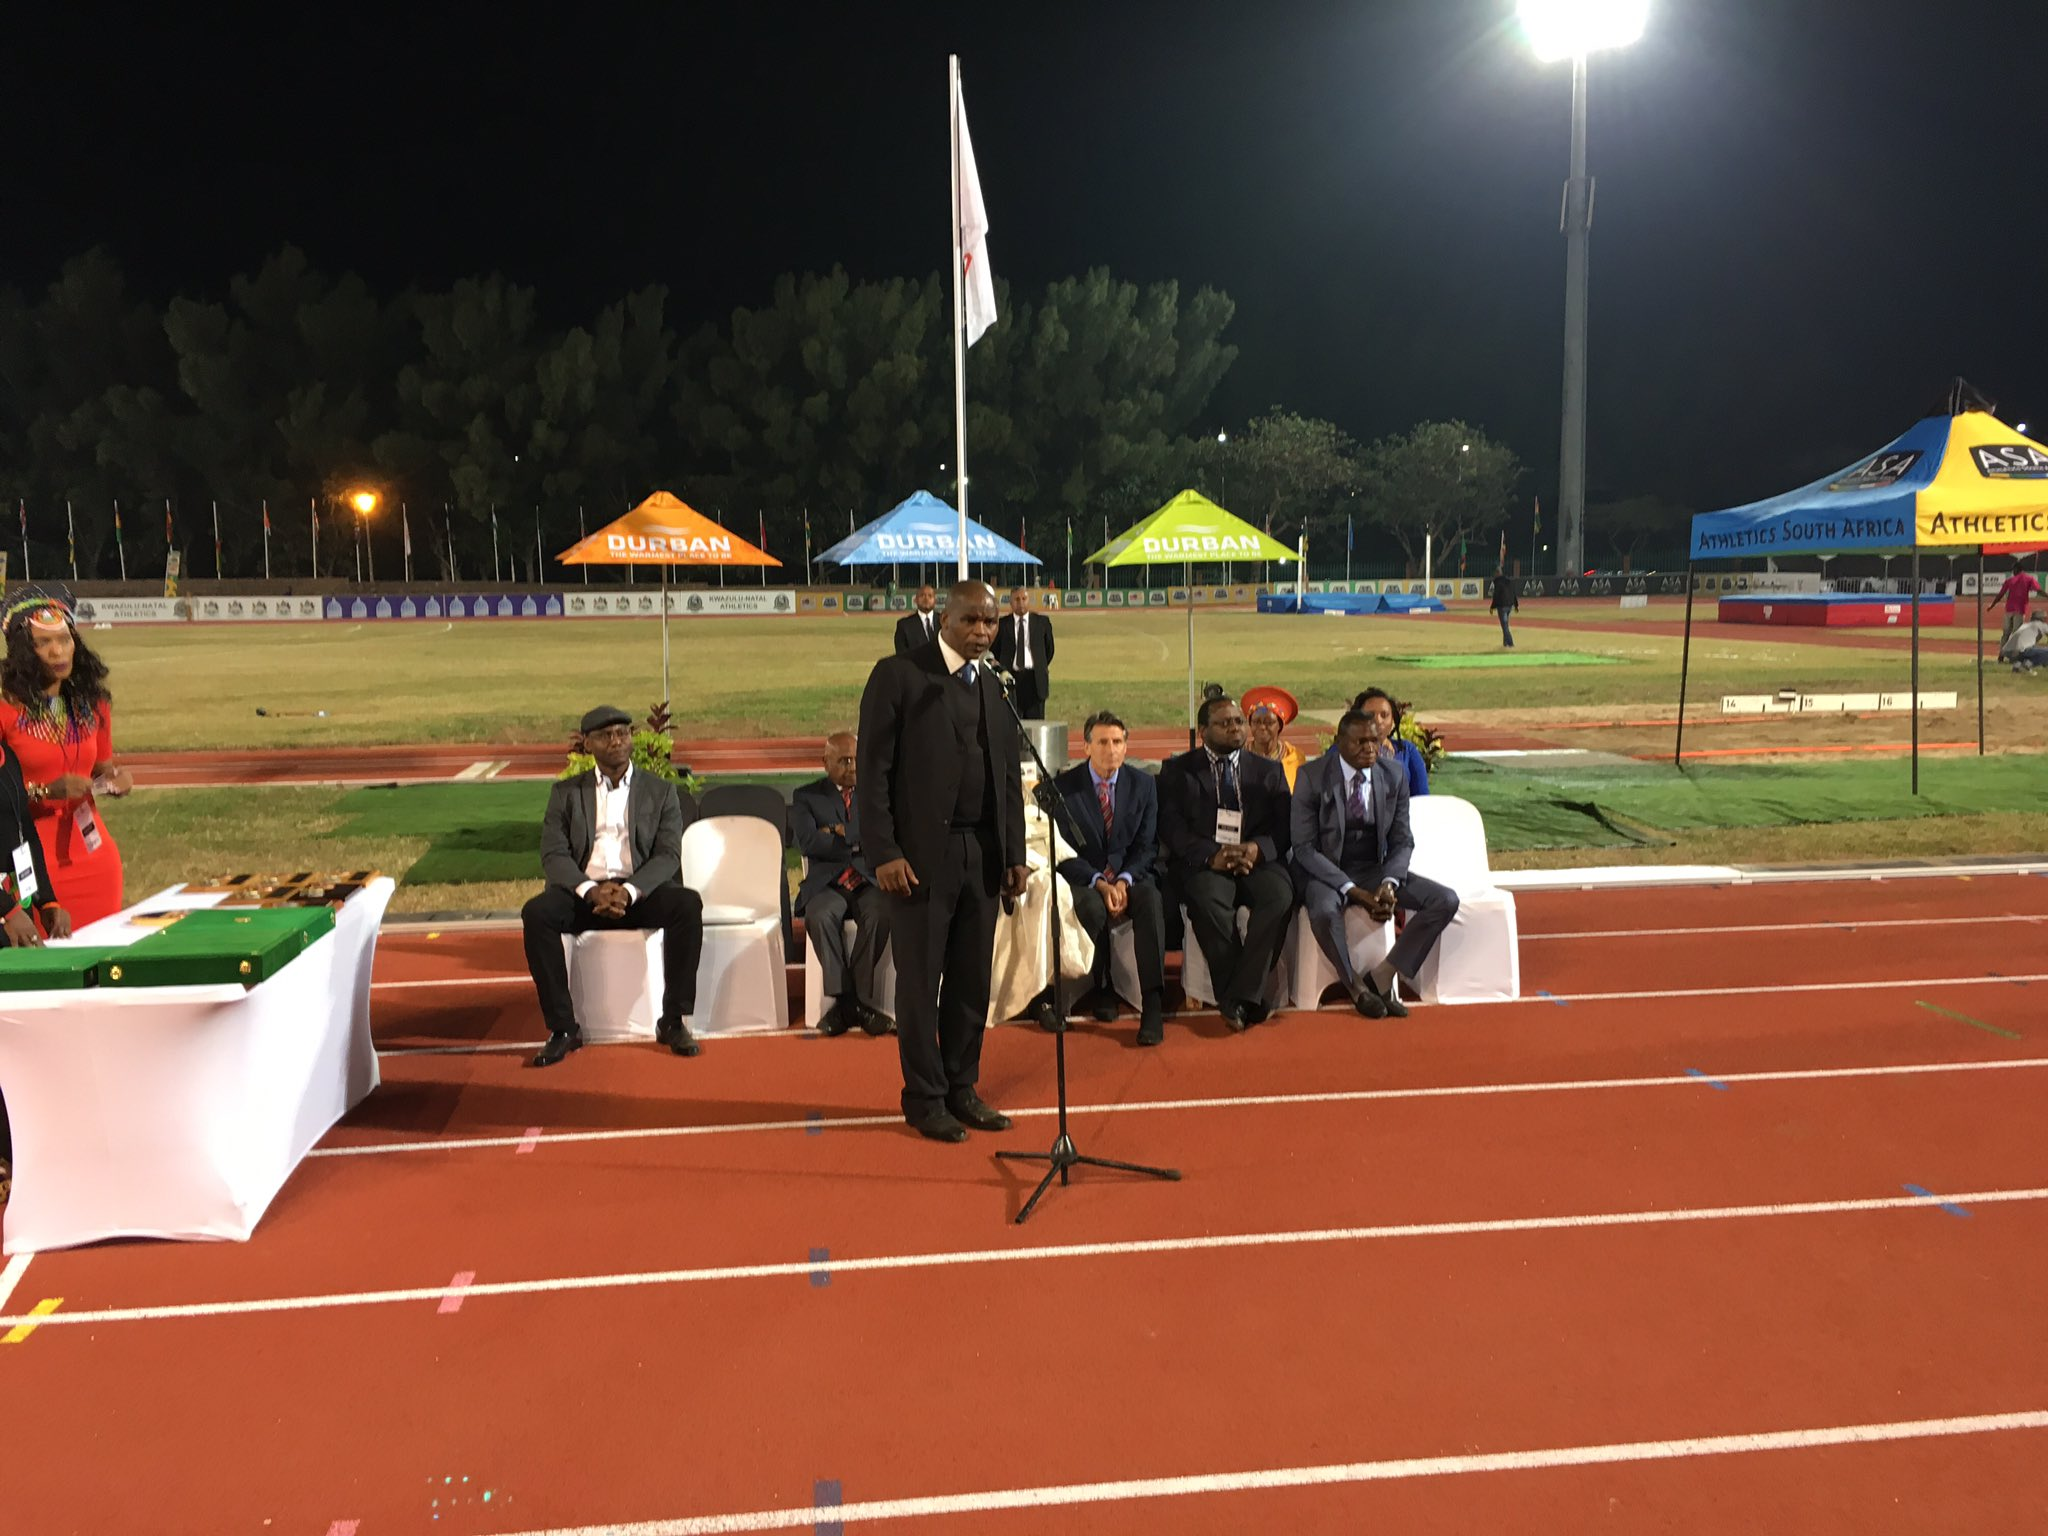 Closing ceremony and baton handover of the 20th #AfricanChamps #Durban2016 #CAA2016 https://t.co/myoBywlFlX